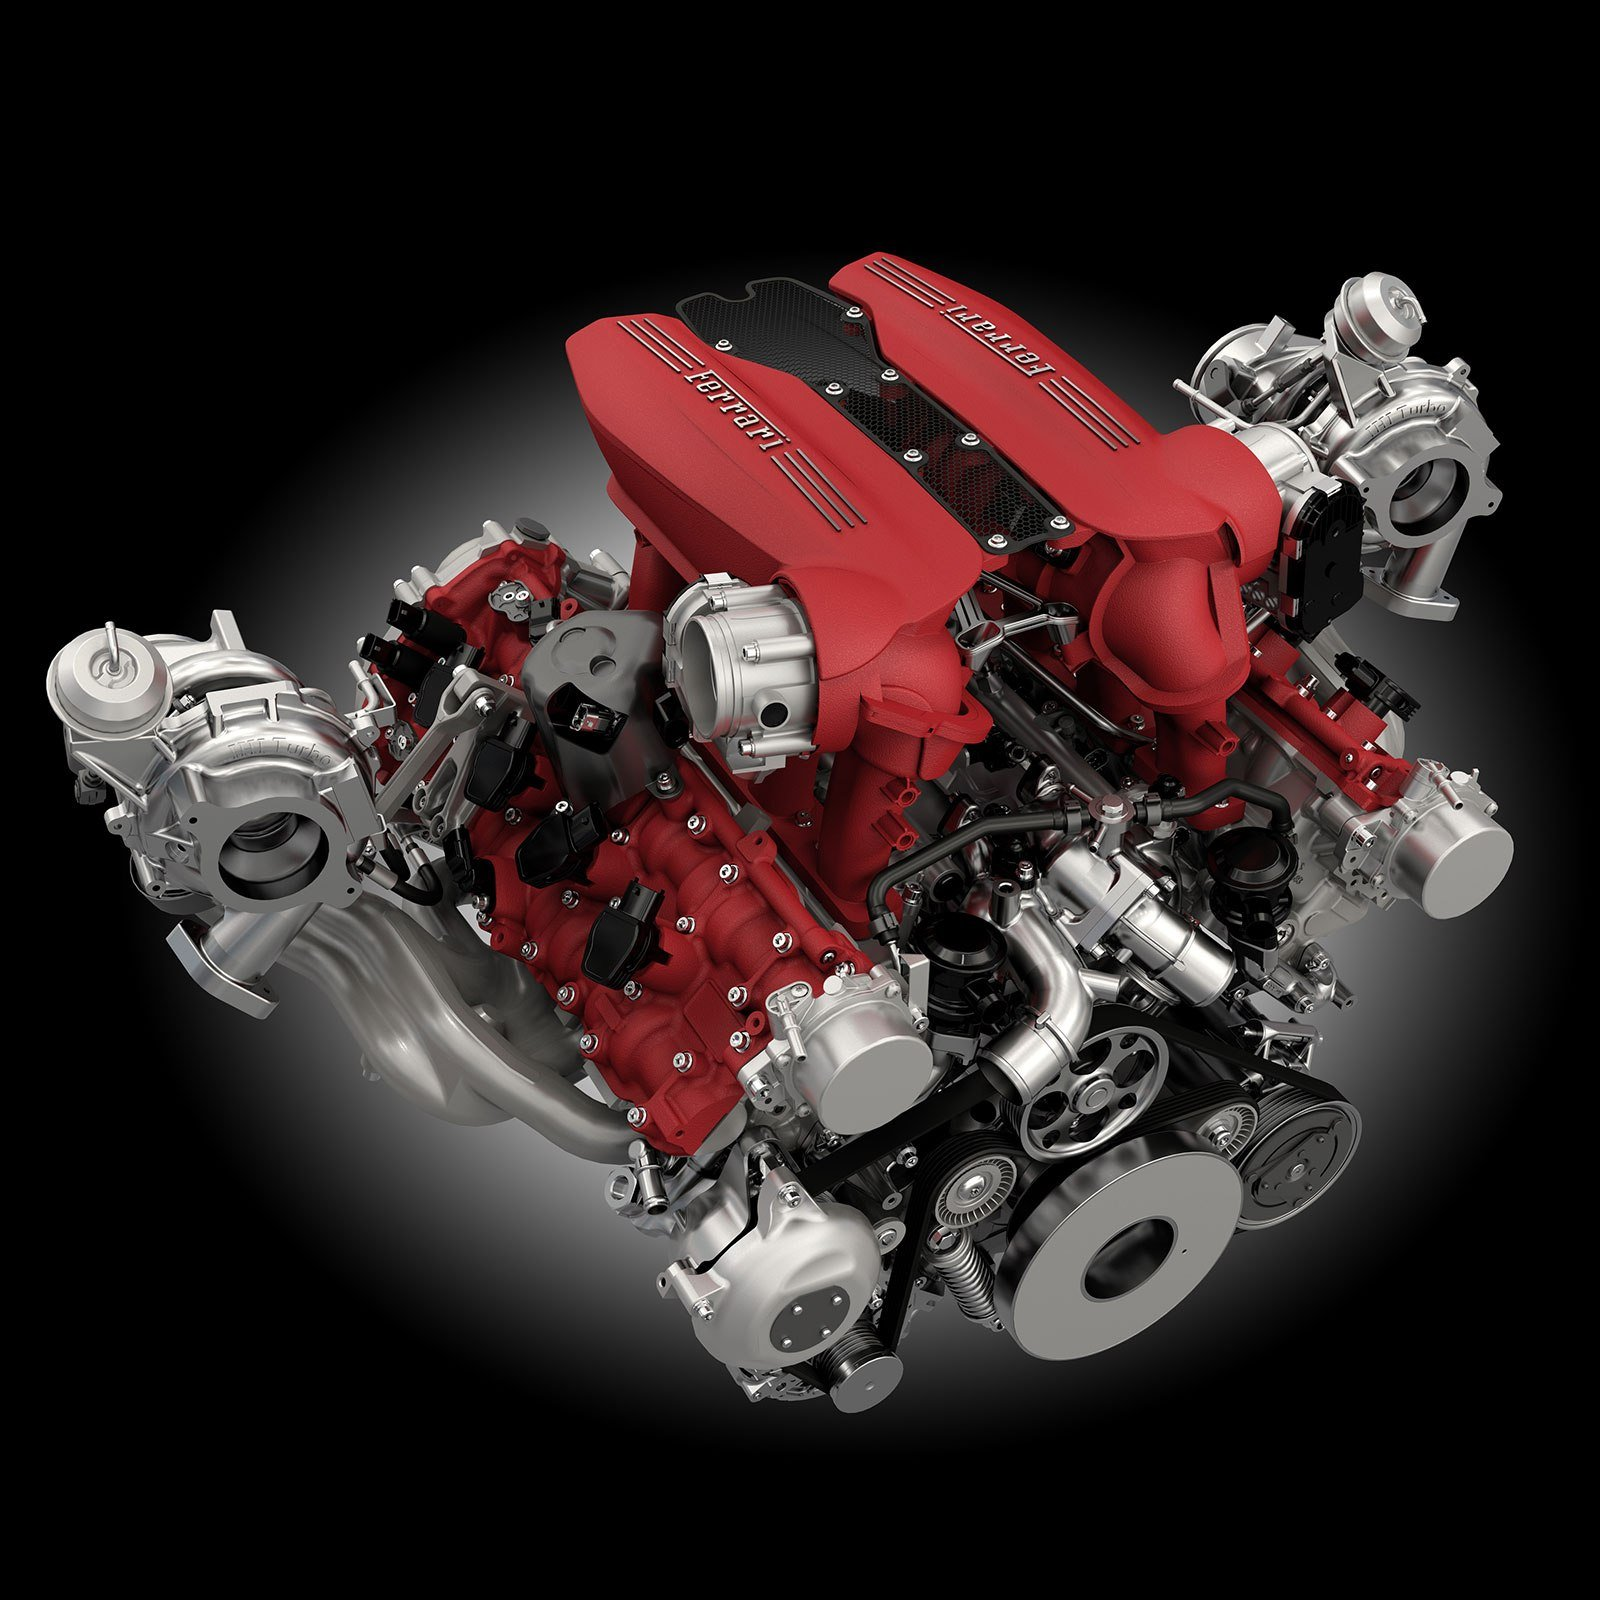 Ferrari 488 GTB turbo charged engine